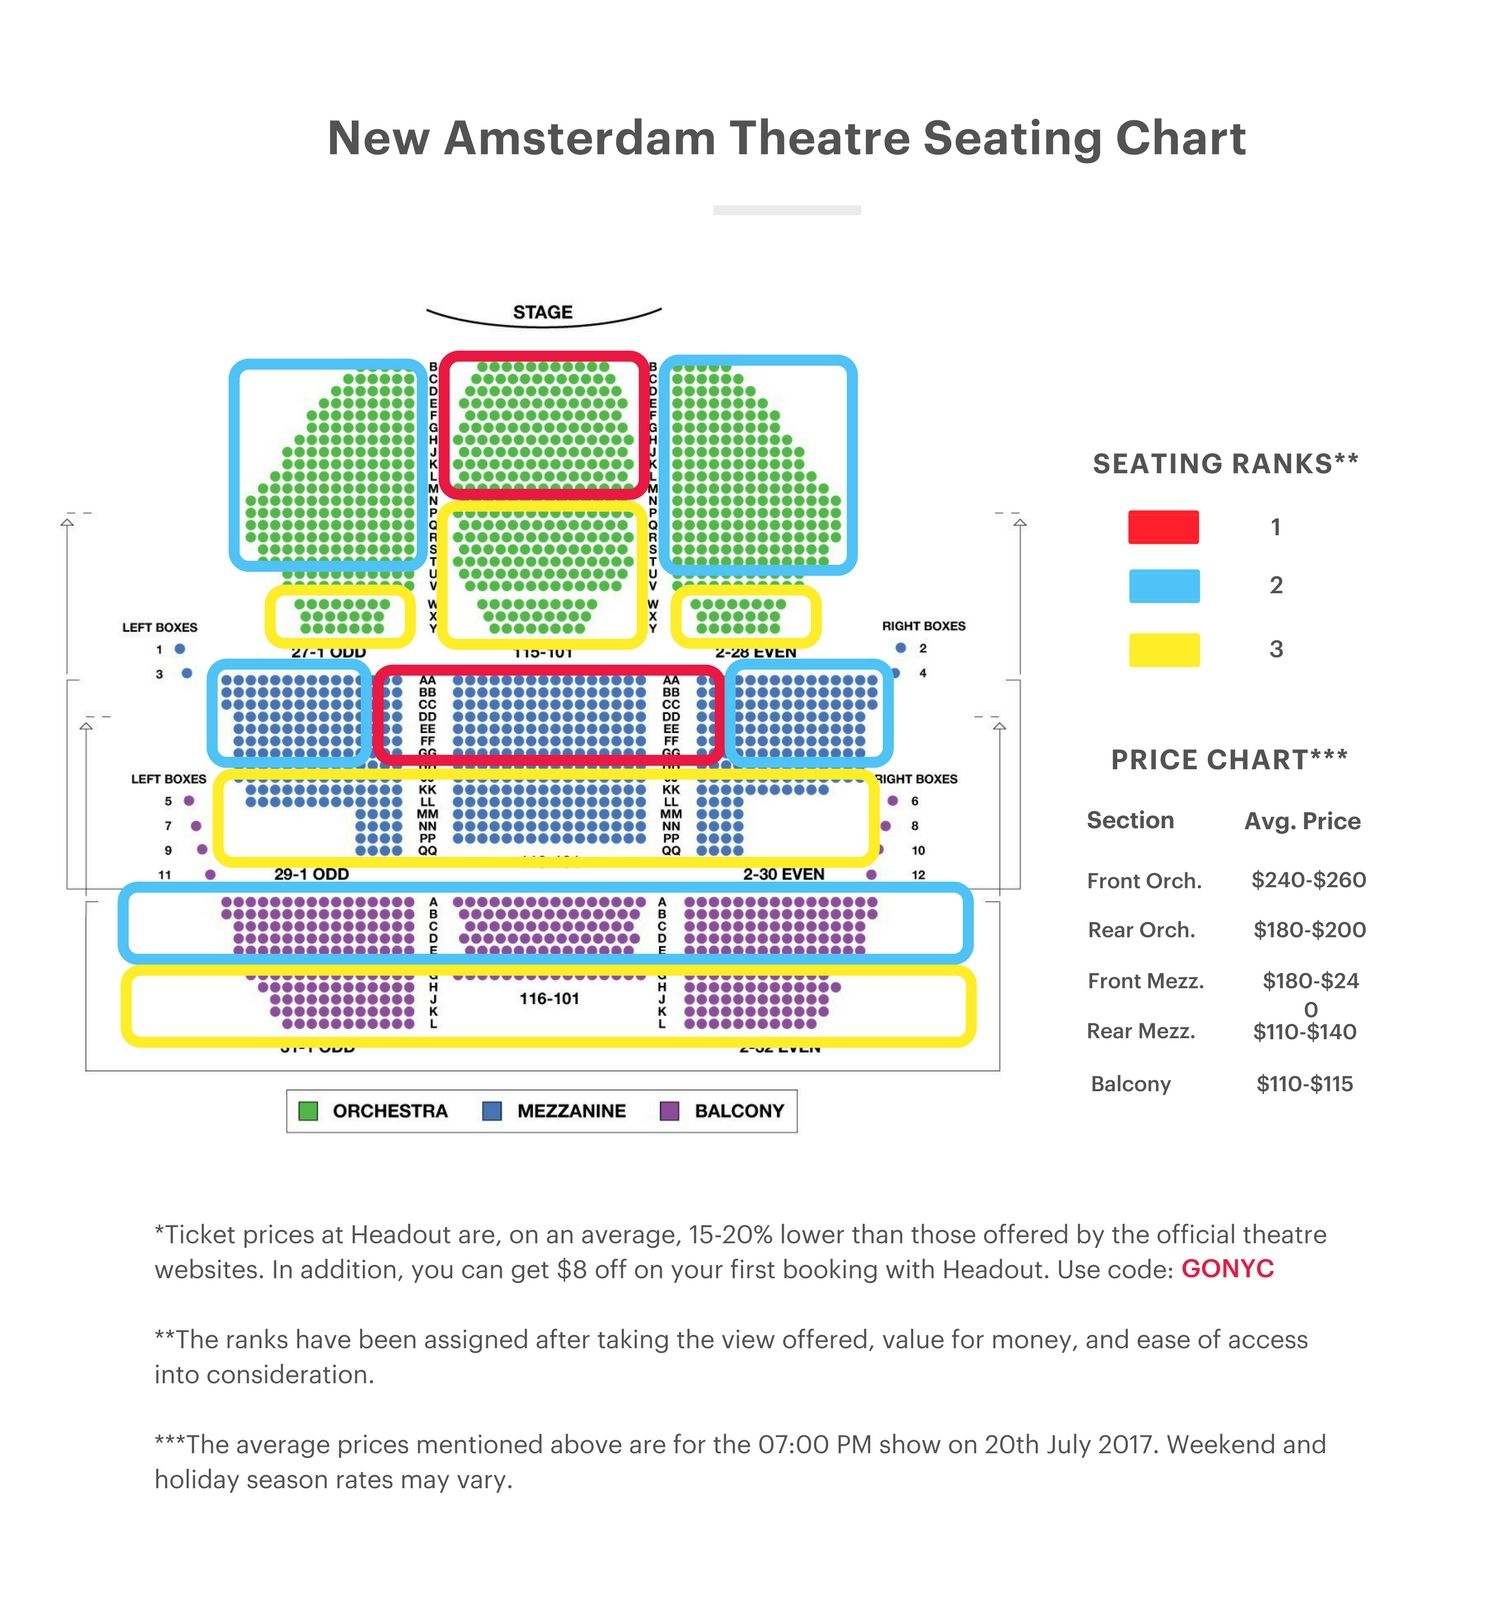 Xperiencetravelthetaylorway The Aladdin Broadway Guide New Amsterdam Theatre Seating Chart Seating Charts Theater Seating Chart